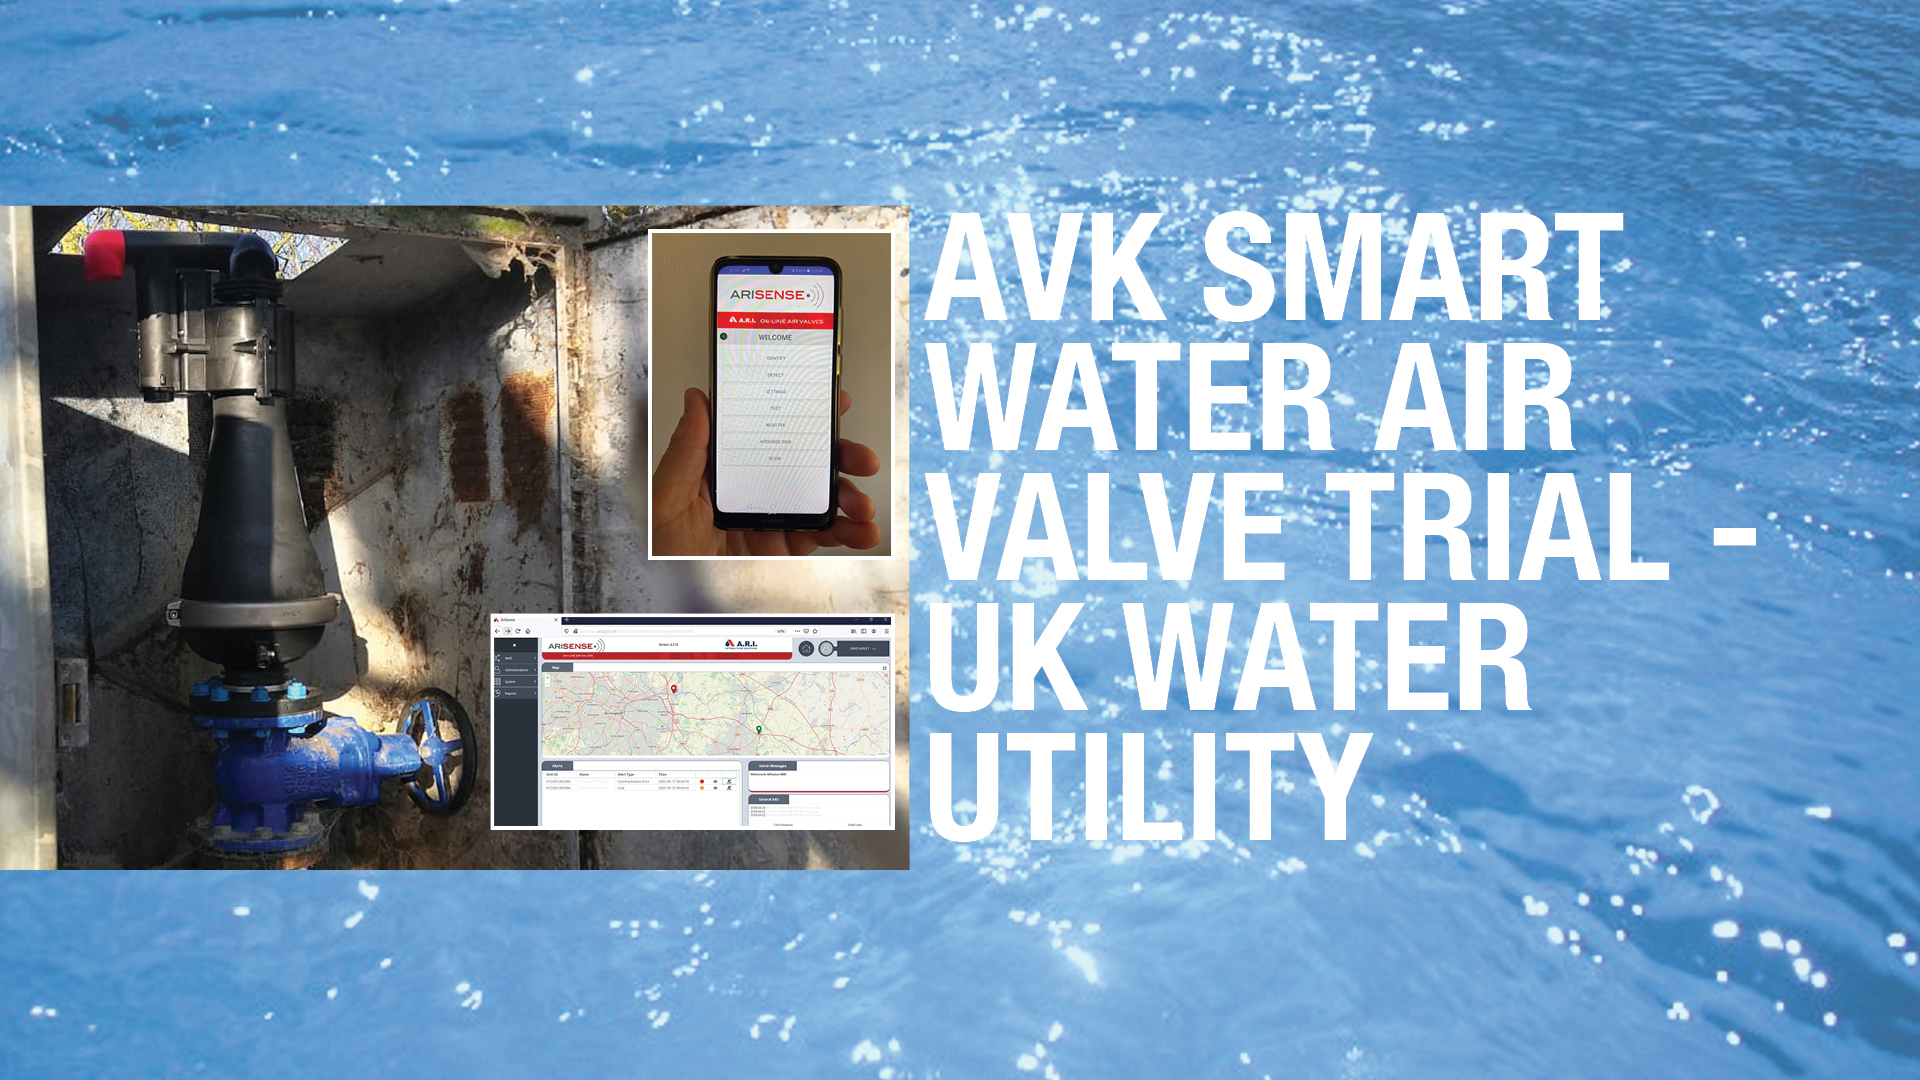 Smart Water Air Valve Trial for UK Water Utility